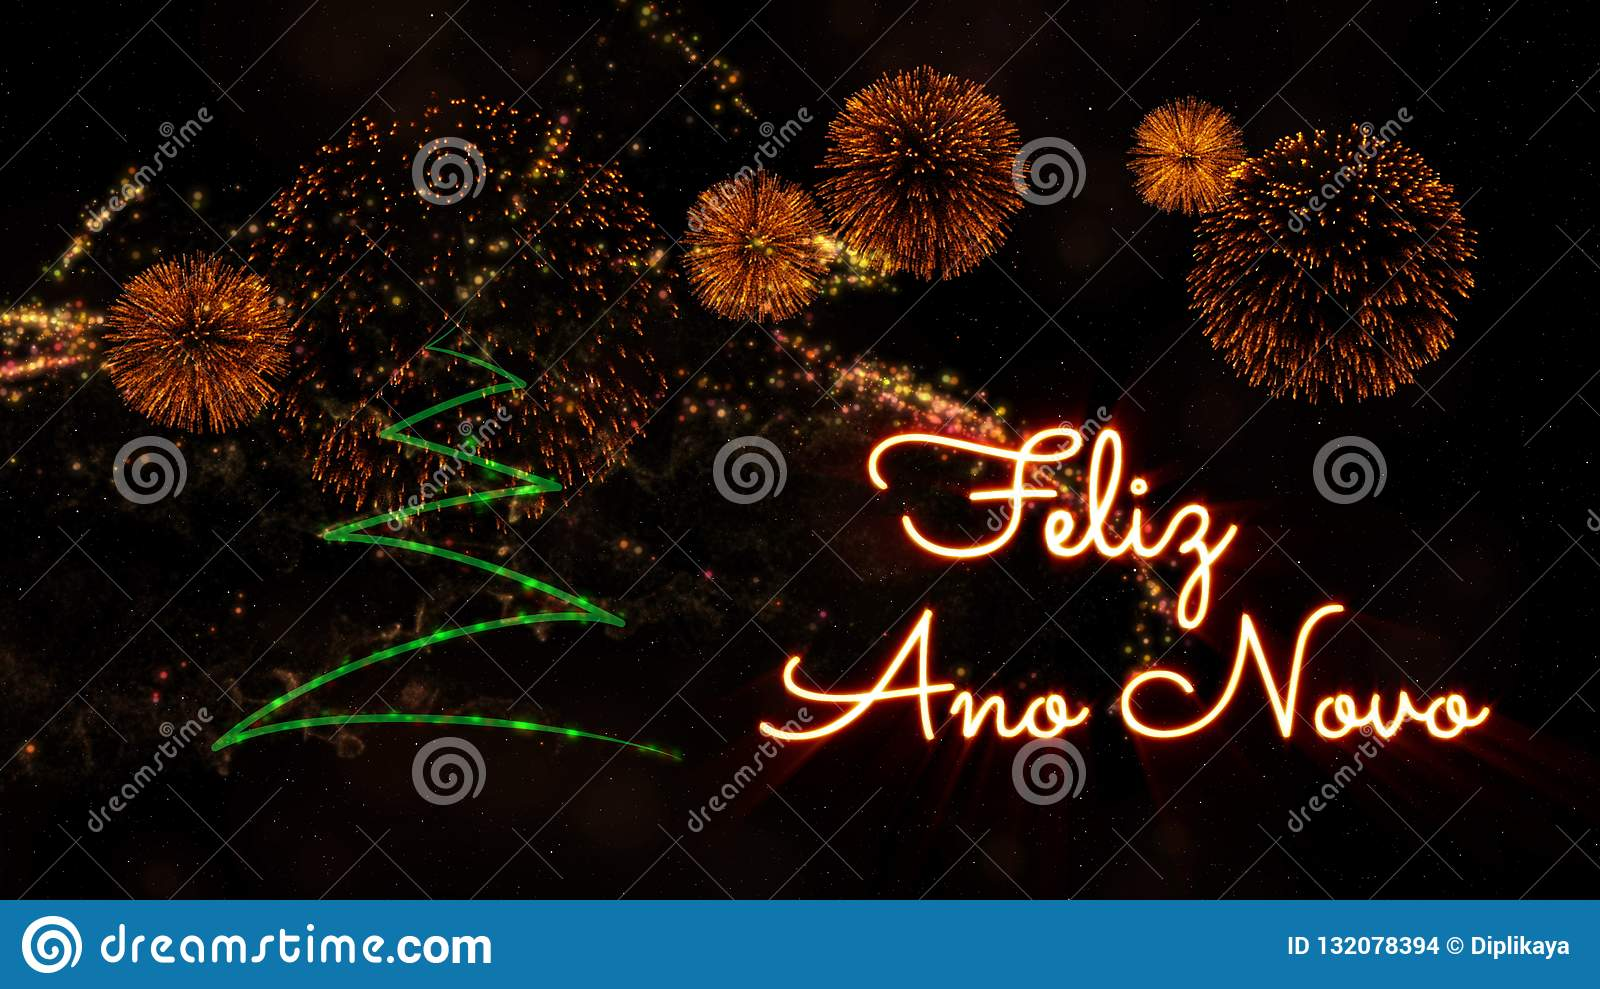 Happy New Year text in Portuguese  Feliz Ano Novo  over pine tree and fireworks